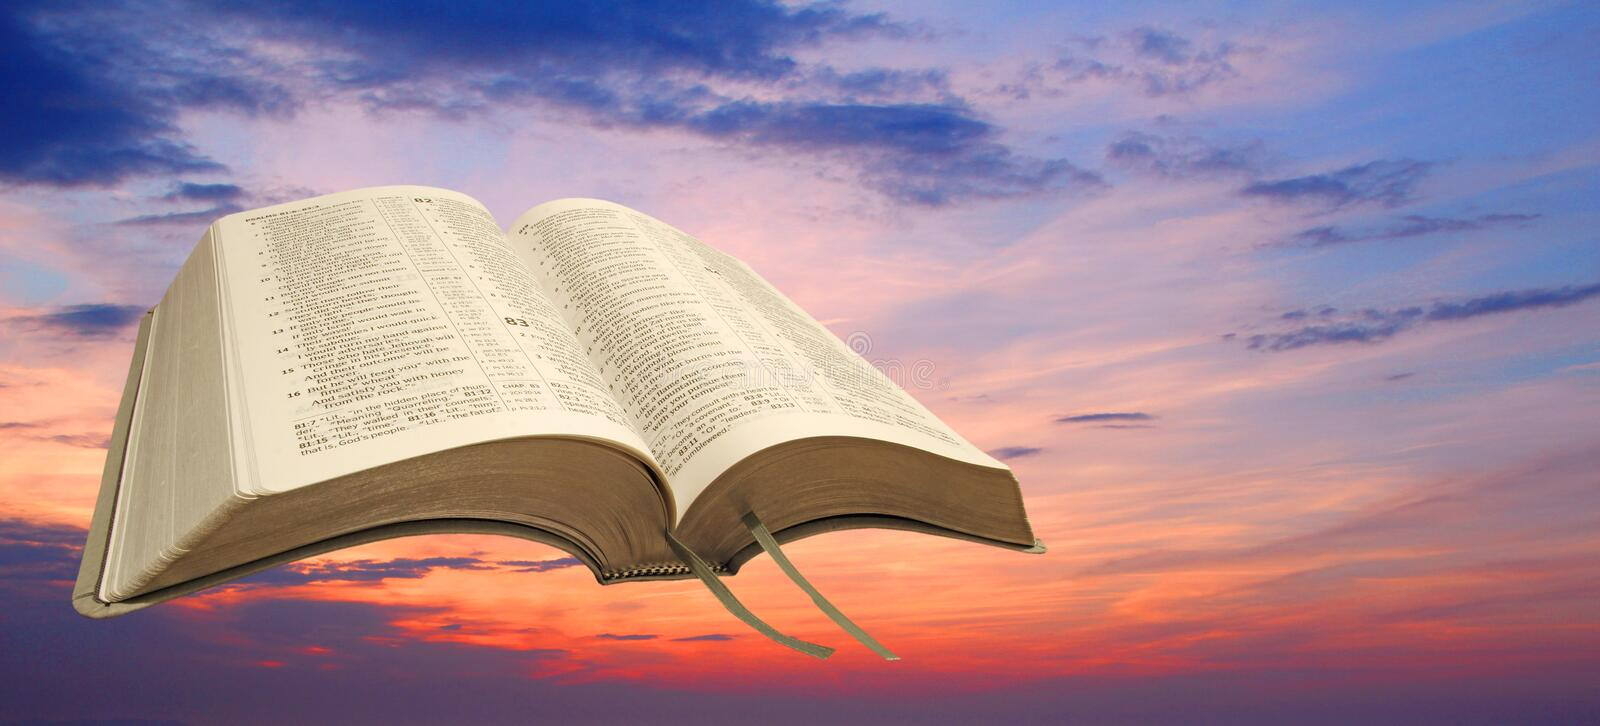 Open bible sunset sky. Photo of bible open at book of psalms with peaceful sunset sky ideal for own text etc stock photo